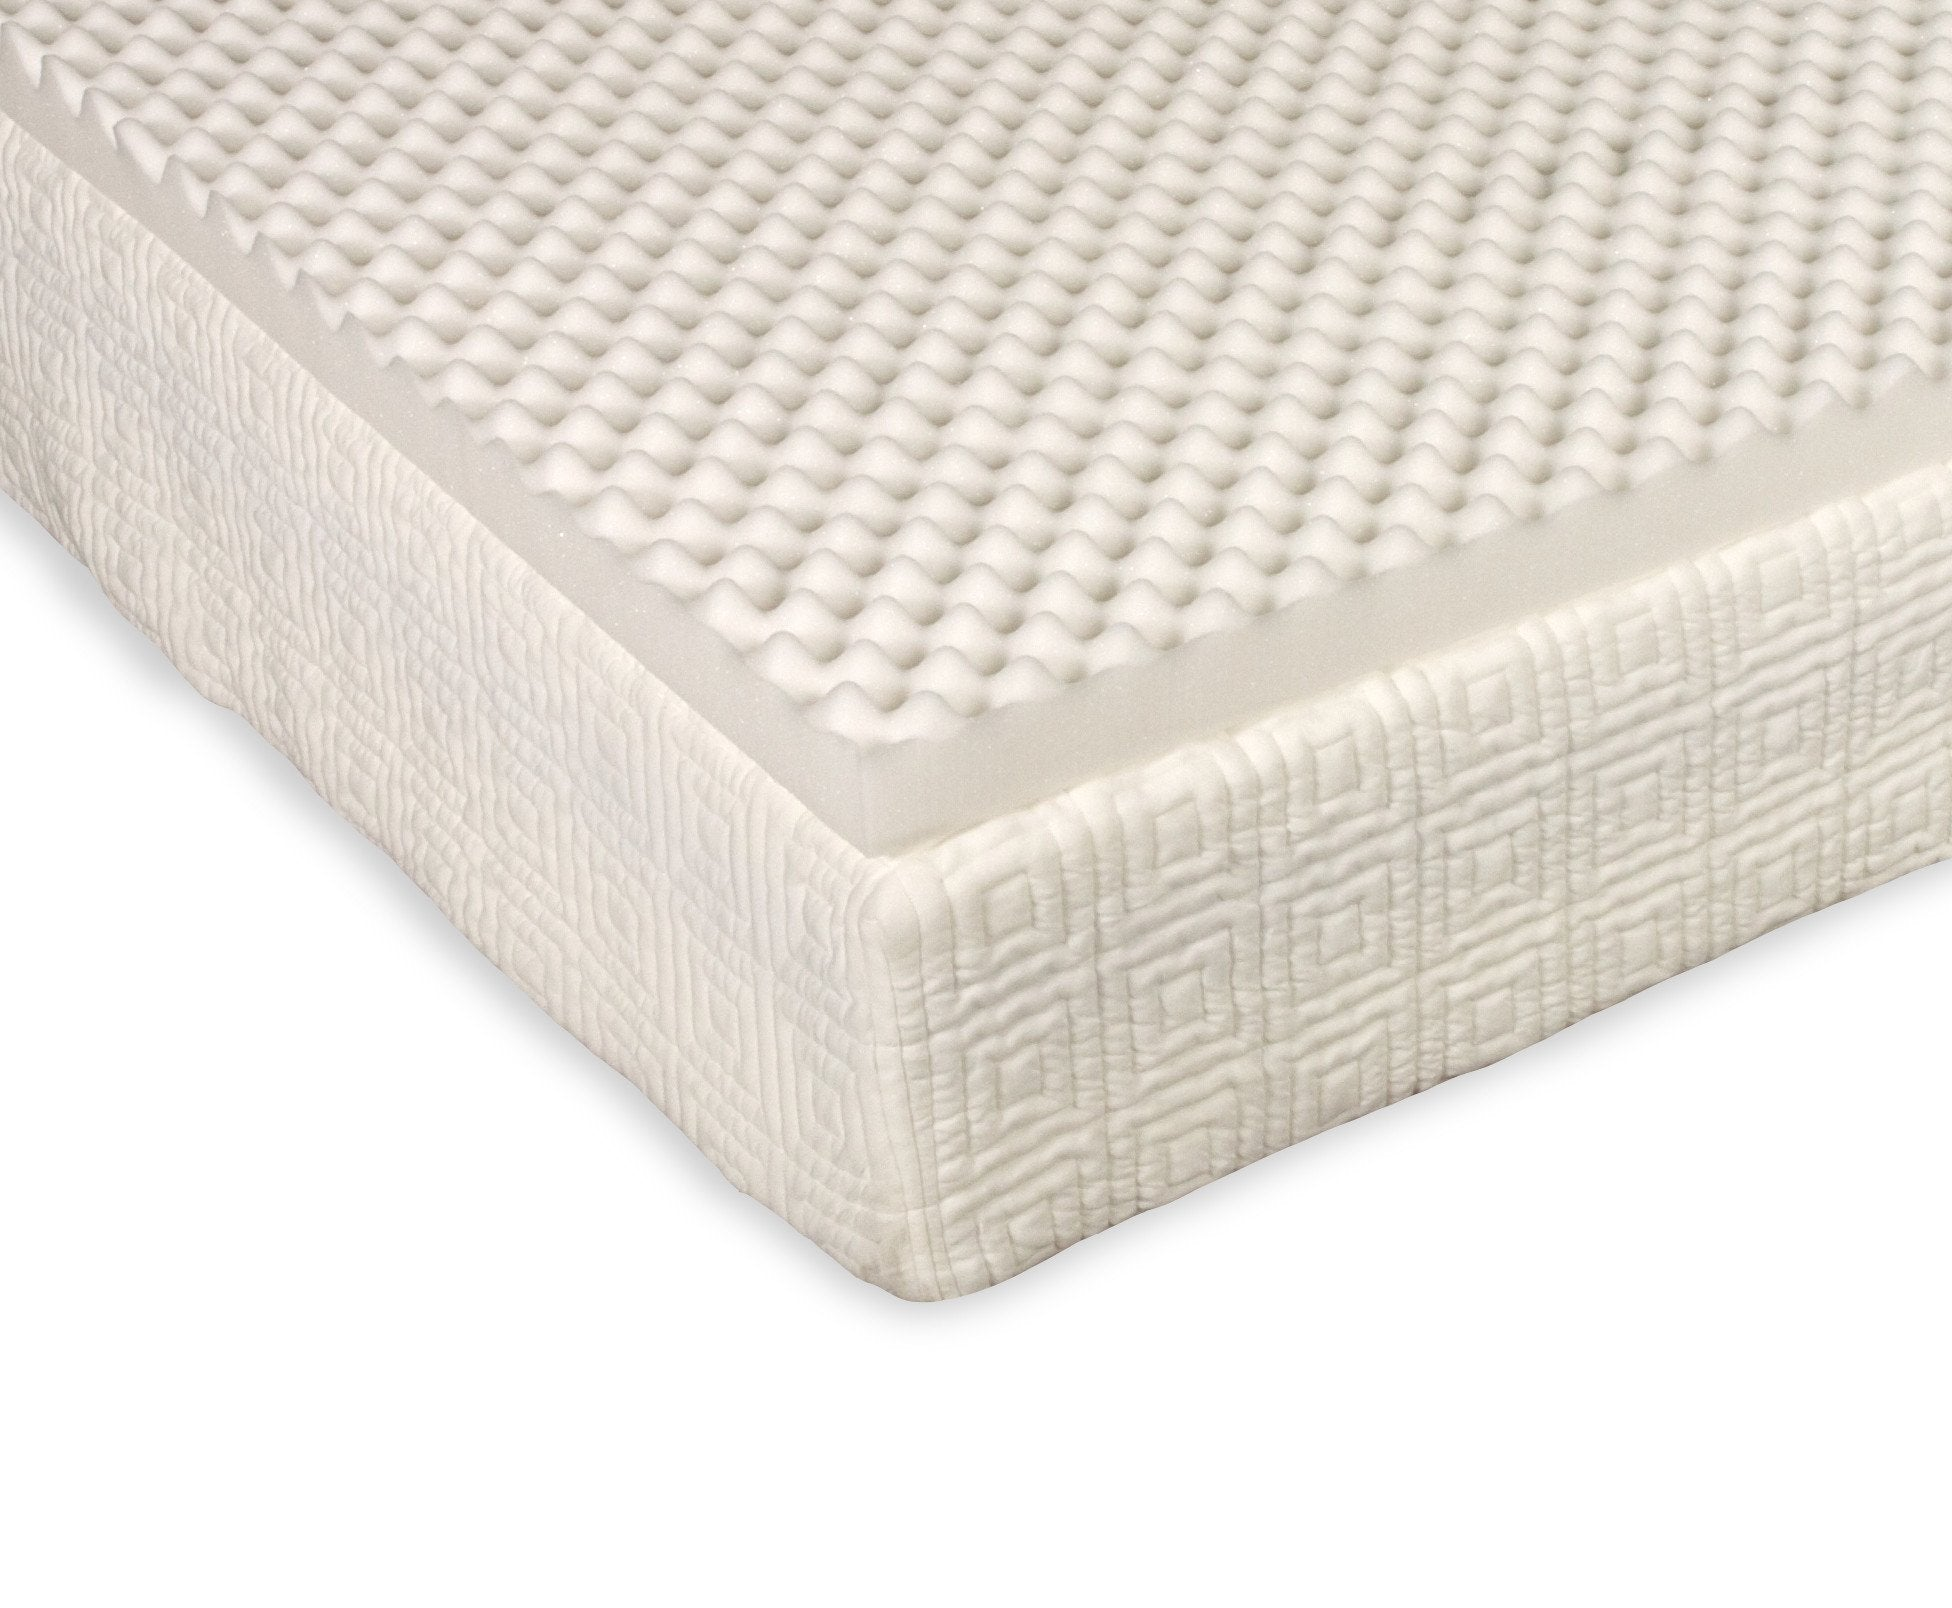 Egg Profile Box 300 Memory Foam Topper Mattress Guru